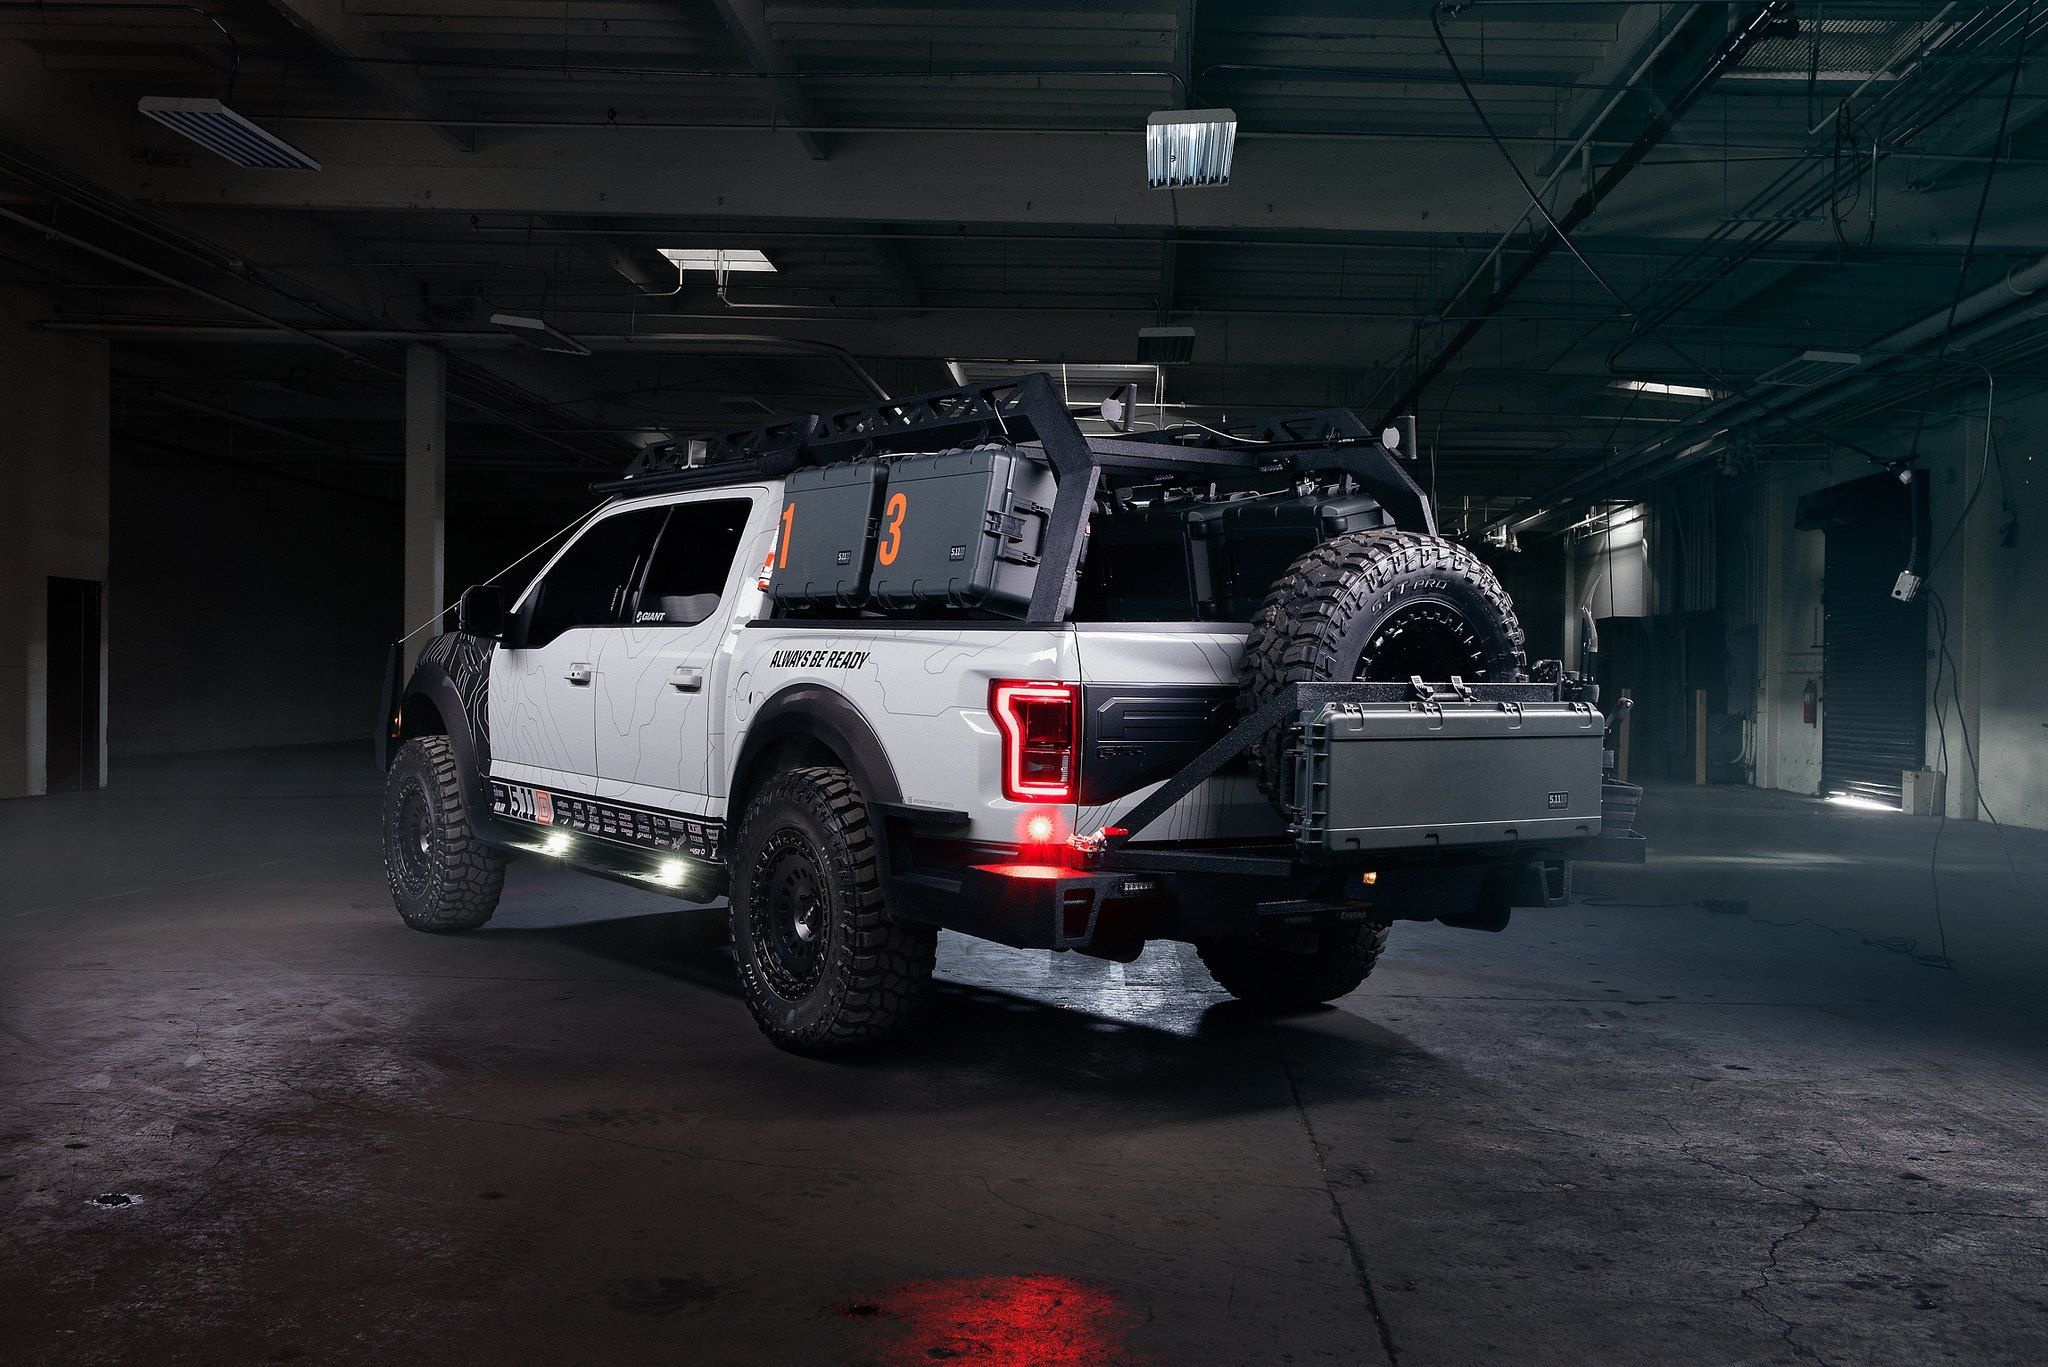 Royal Appearance Of Gray Lifted Ford Raptor With On Black Rotiform Wheels Overland Vehicles Ford Raptor Tactical Truck